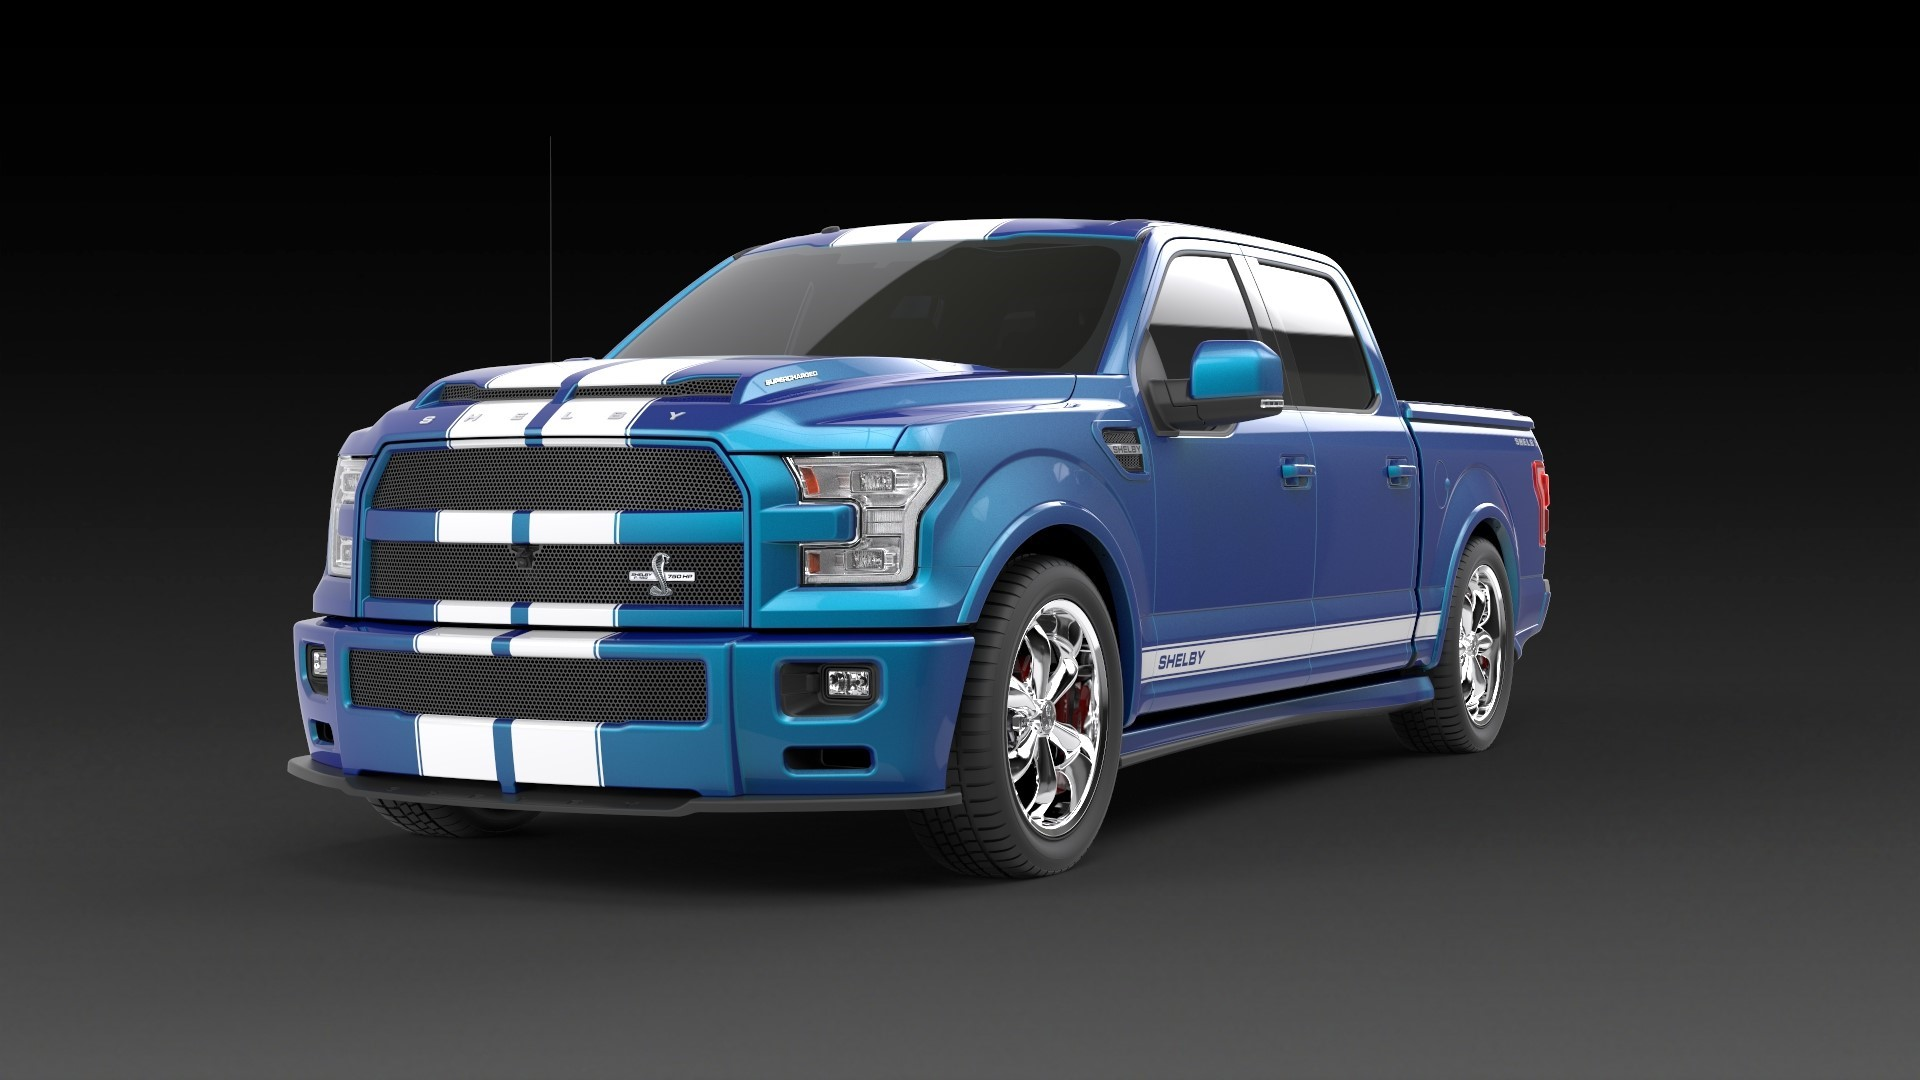 Shelby f150 trucks in merrillville